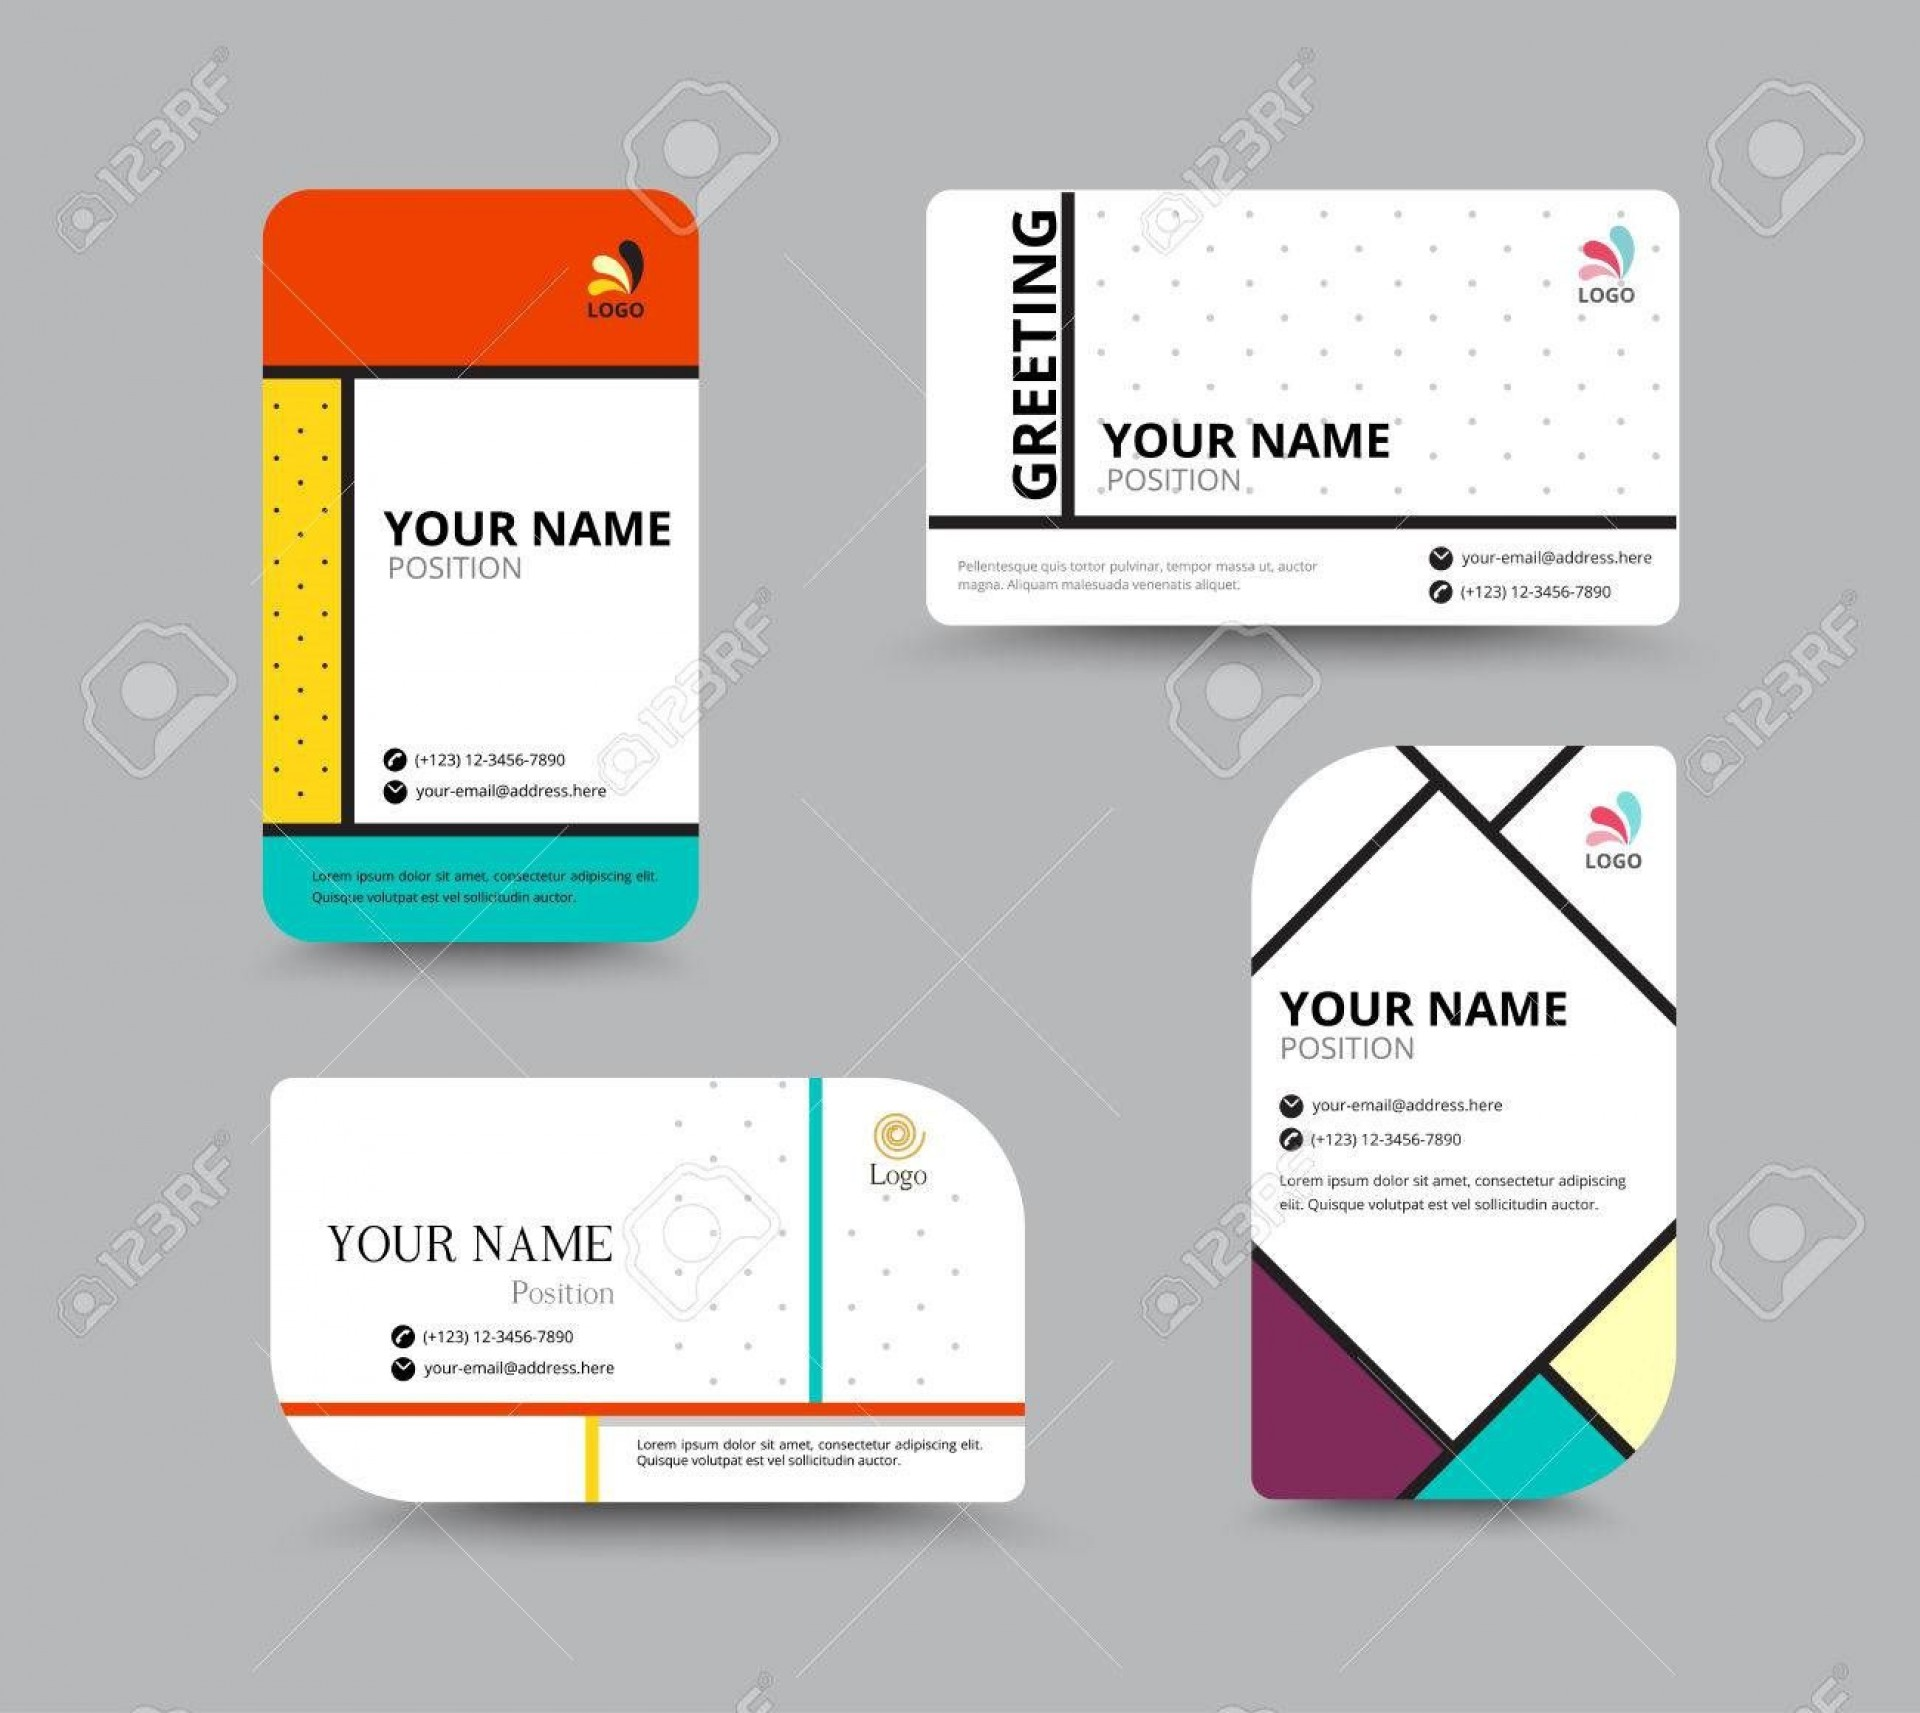 002 Awesome Name Tag Design Template High Definition  Free Download Psd1920